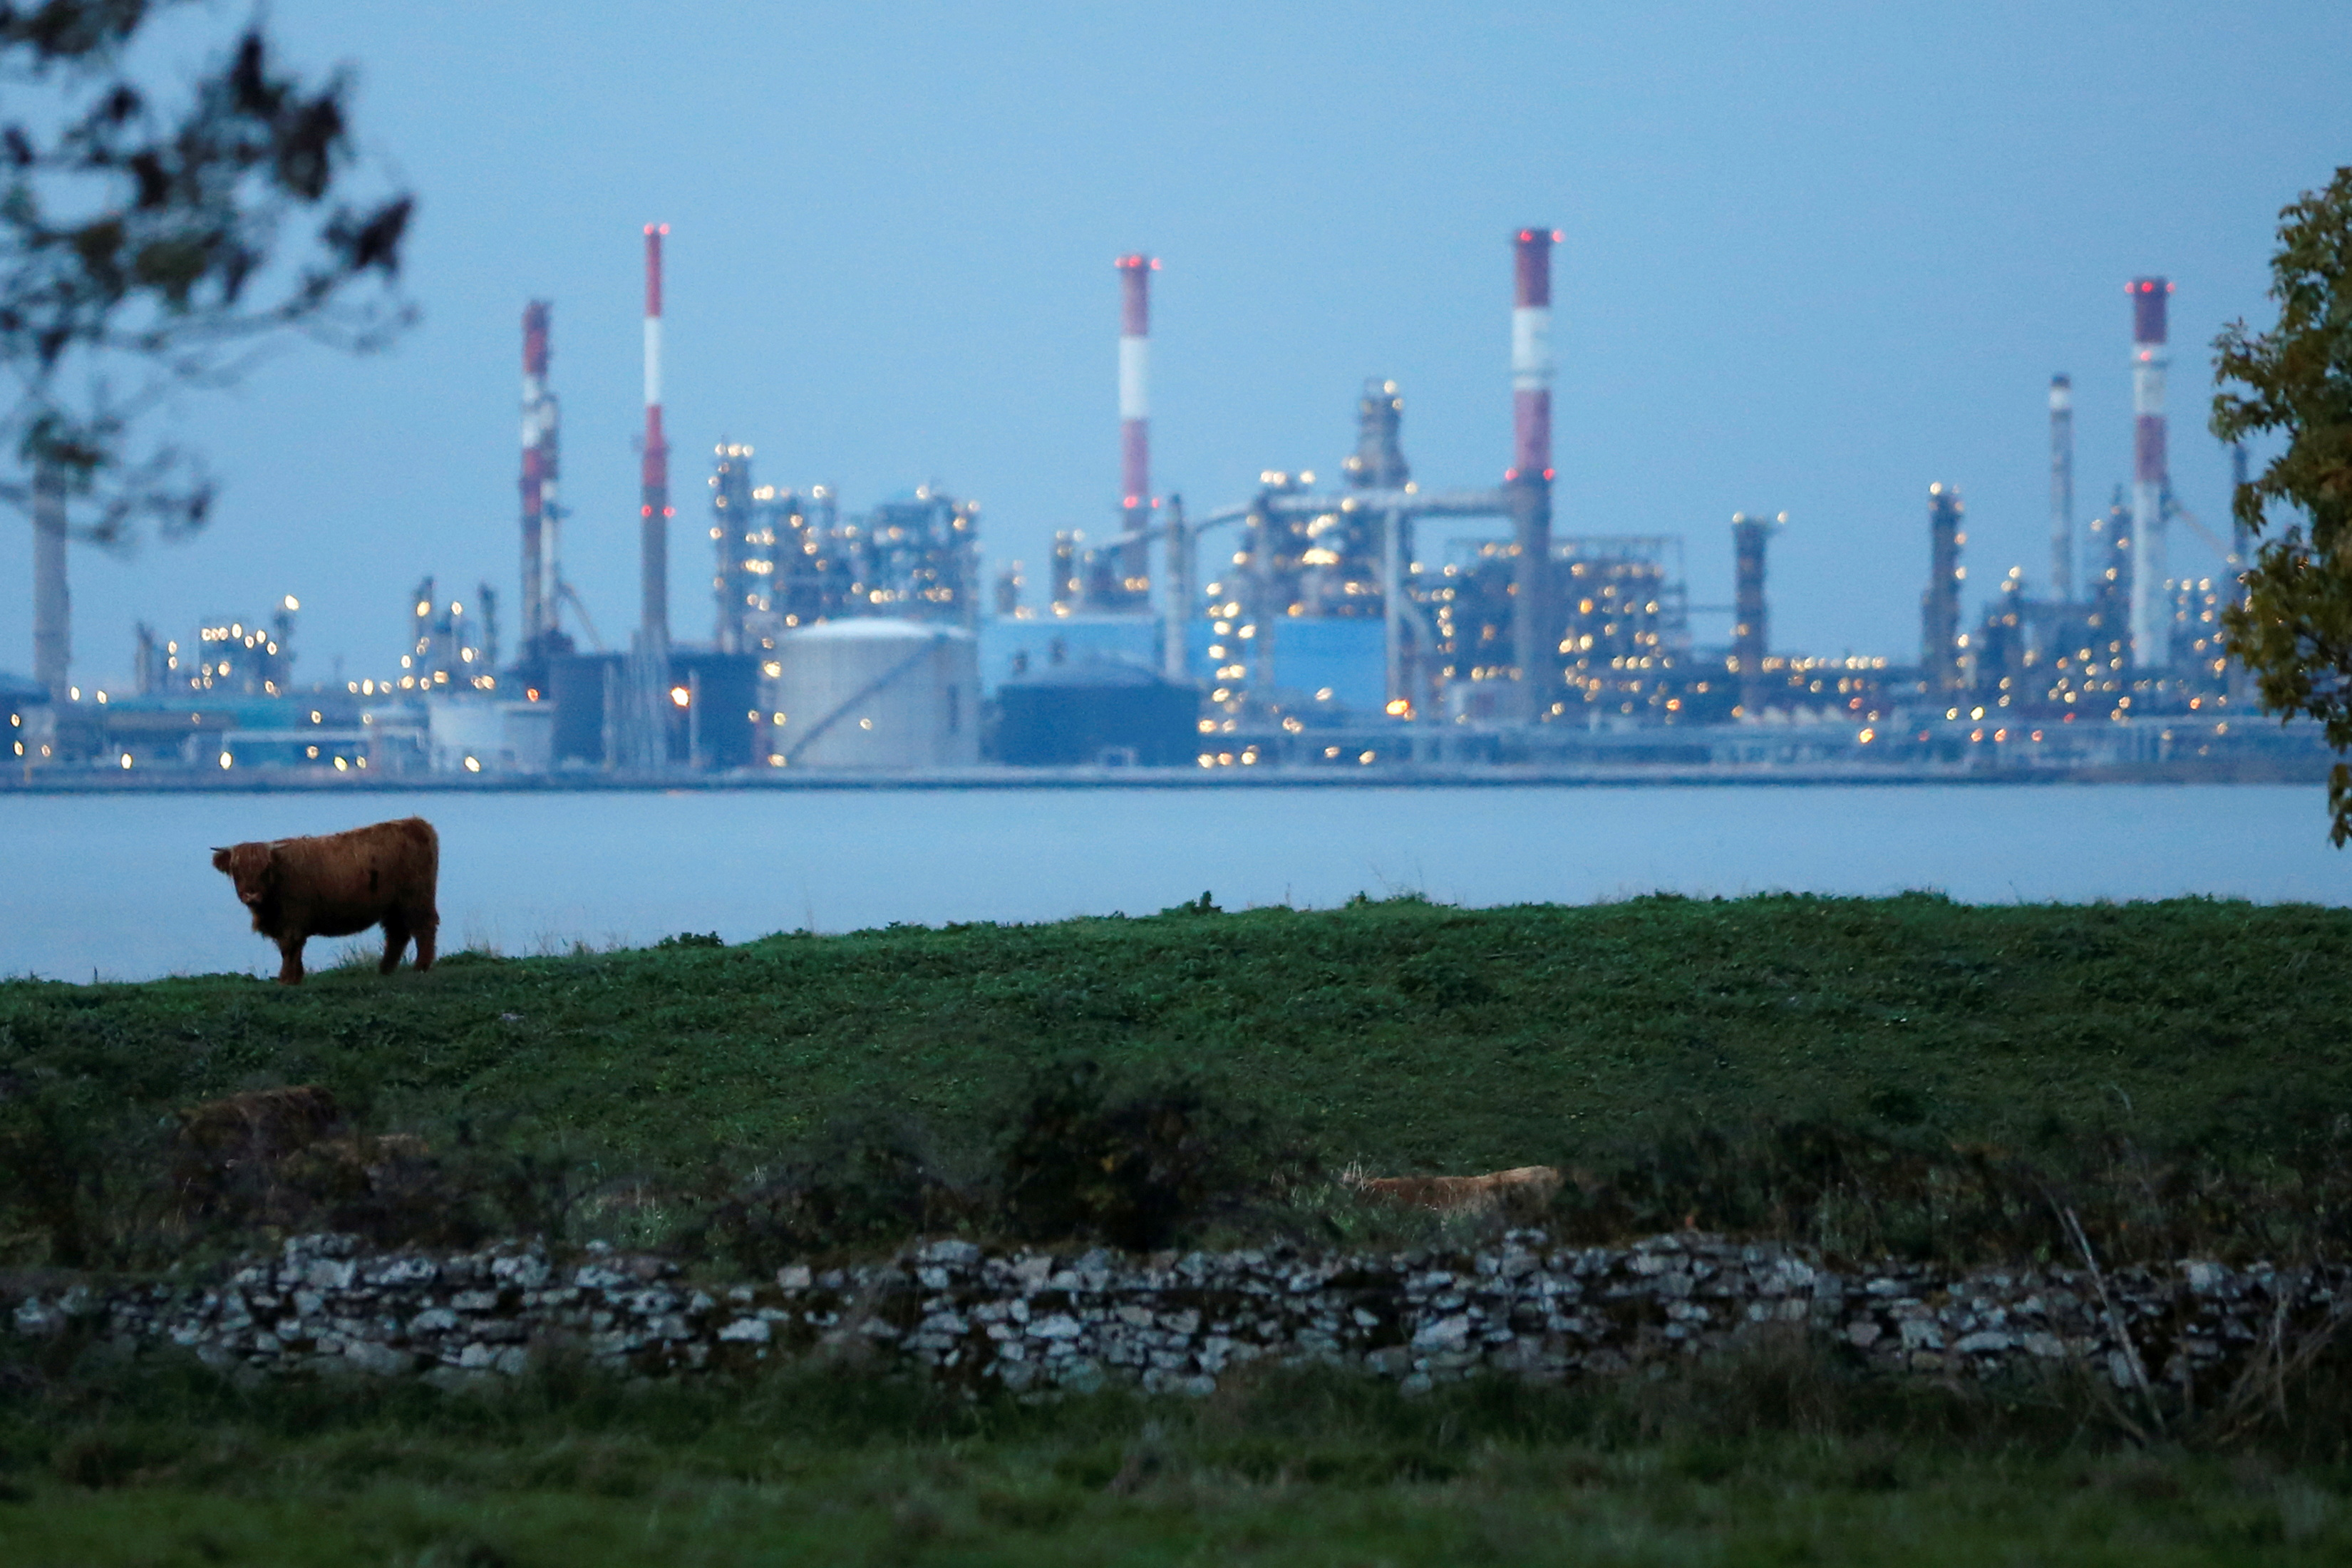 A cow grazes on land in front of an oil refinery in Corsept, western France, October 26, 2015. REUTERS/Stephane Mahe/File Photo